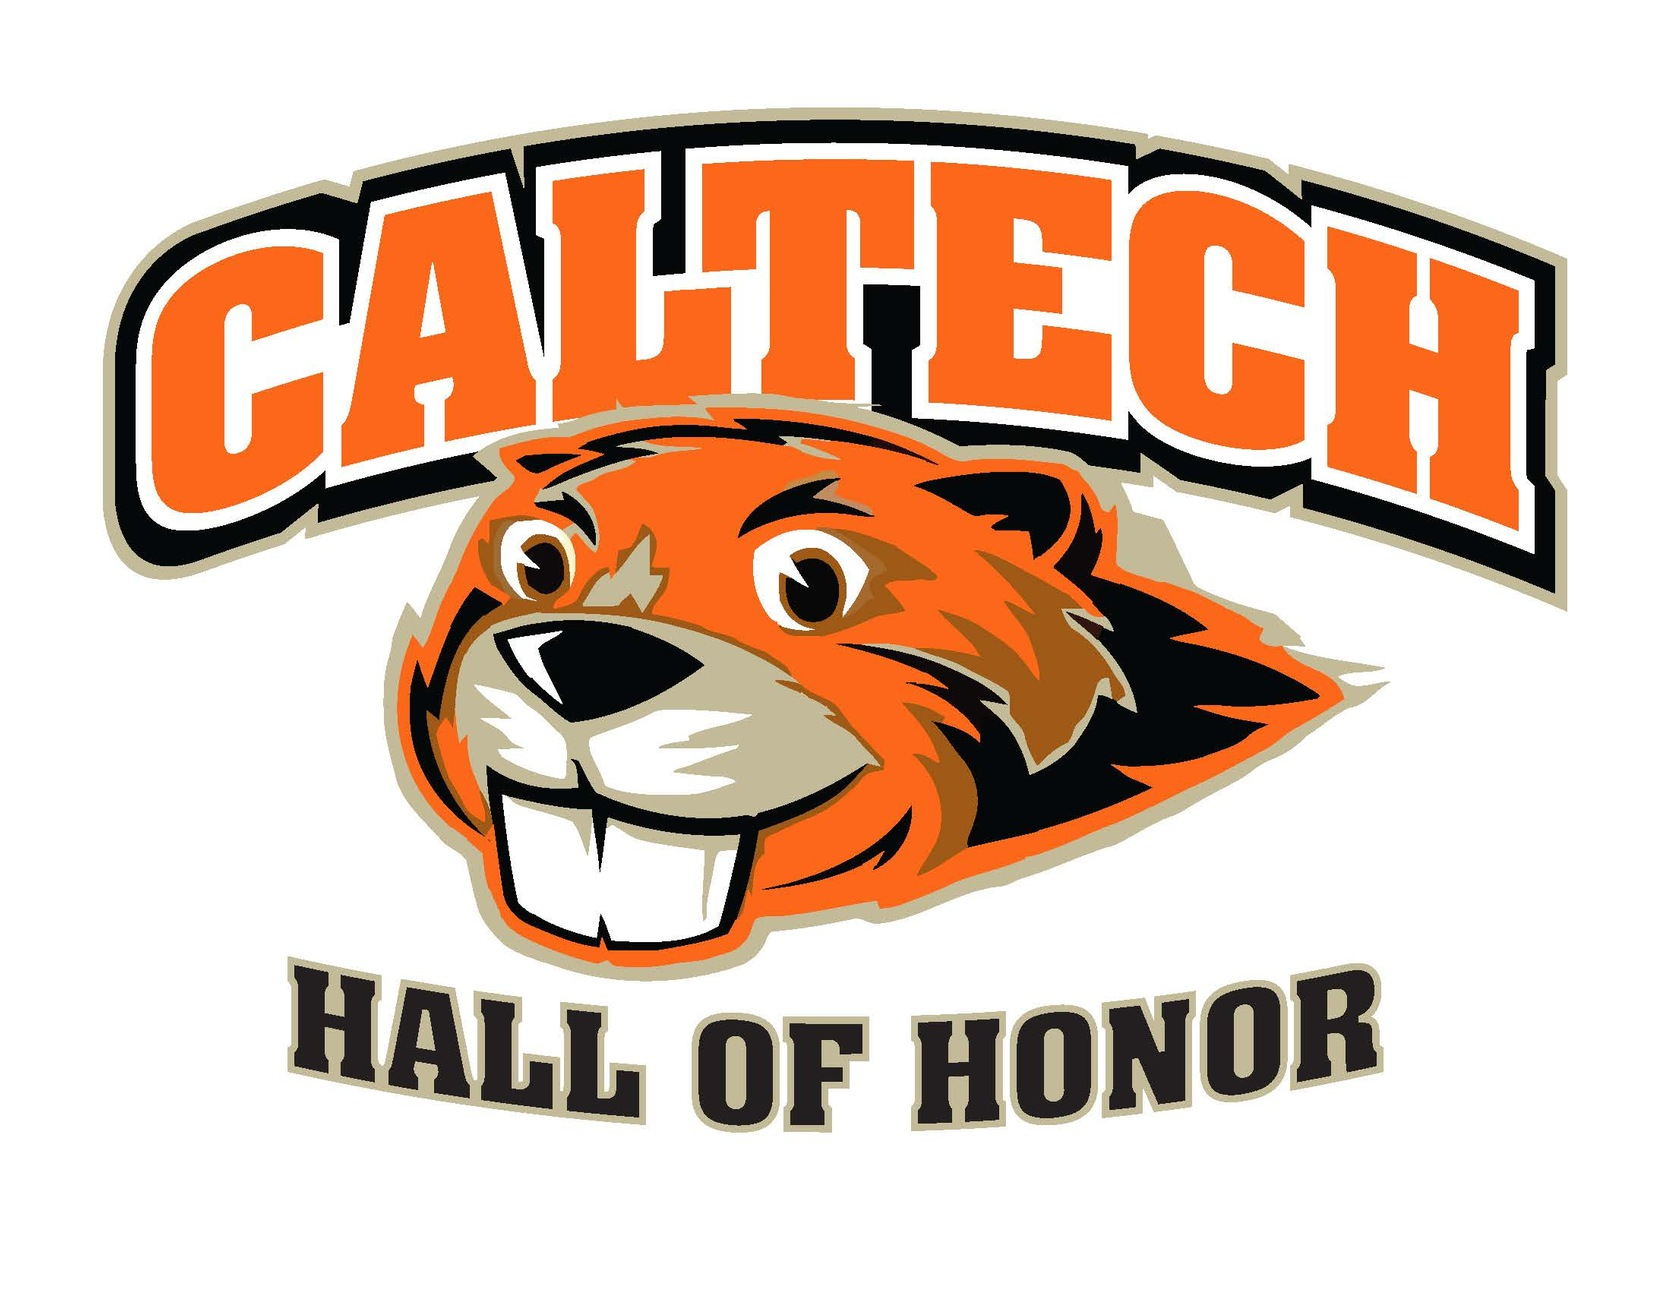 Fifth Hall of Honor Class Revealed